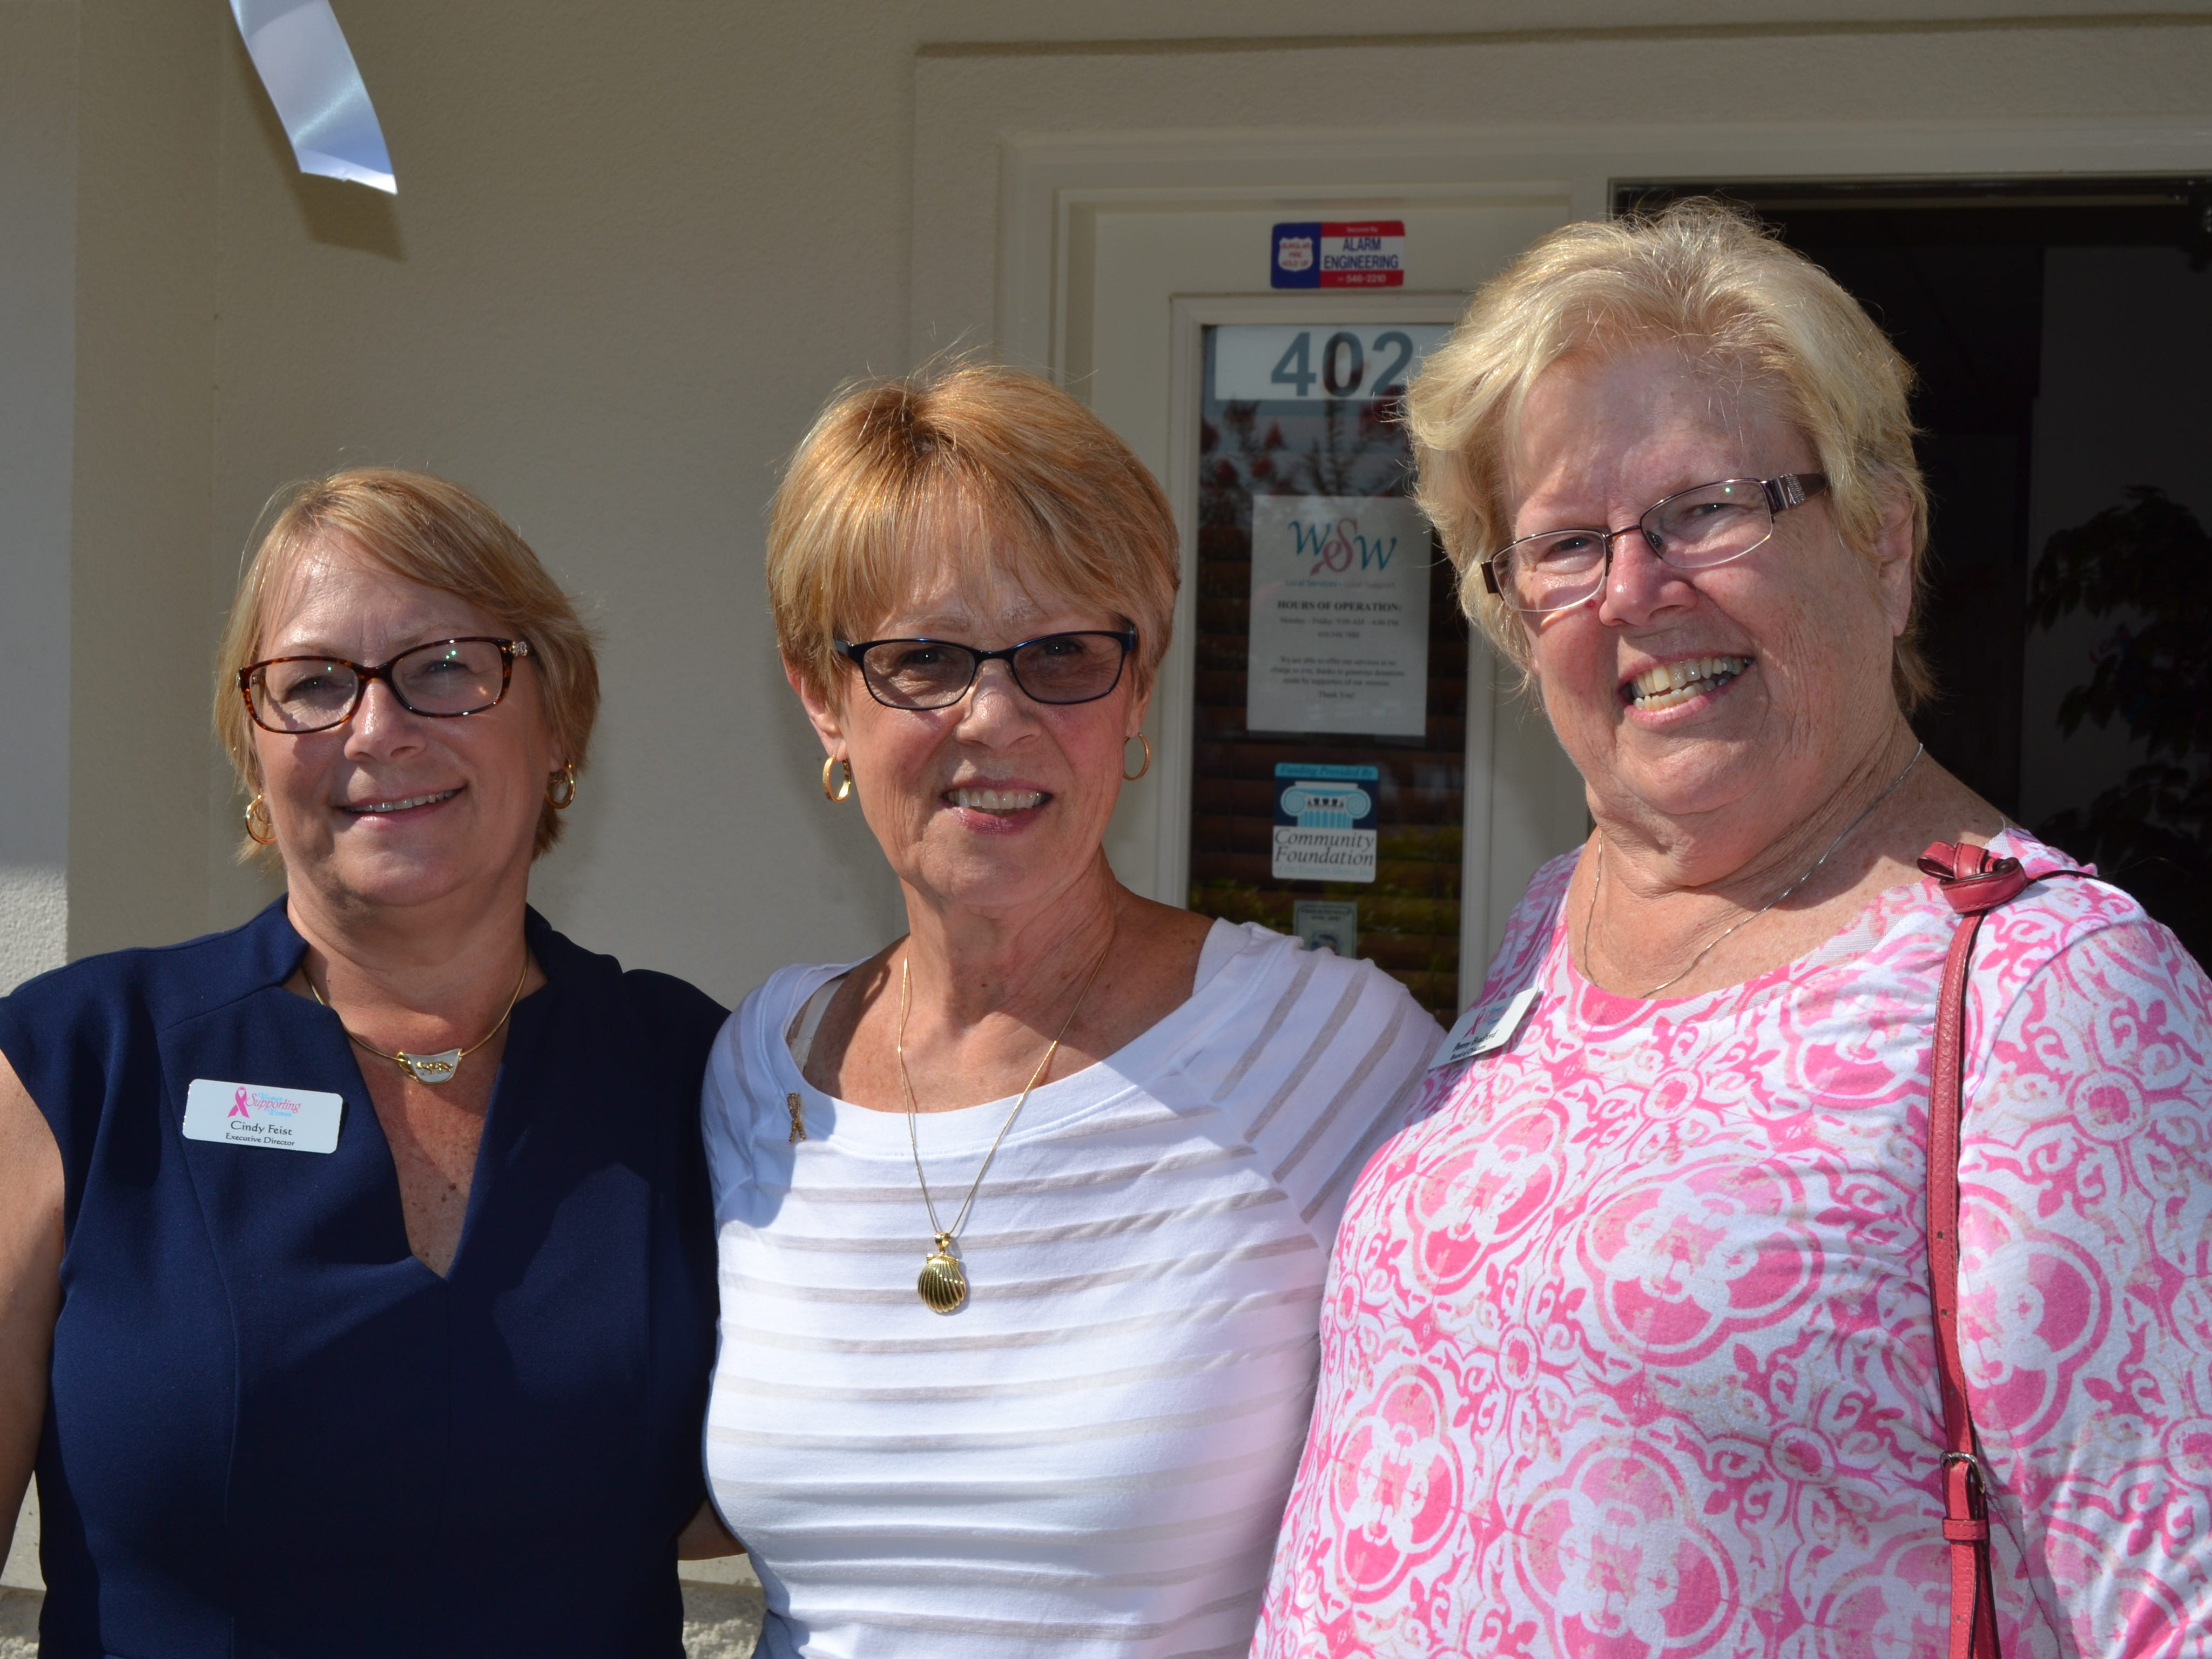 From left, Women Supporting Women executive director Cindy Feist, founder Sue Revelle and board member Penny Bradford attend the 25th anniversary party for the breast cancer support organization in Salisbury on Thursday, July 26.